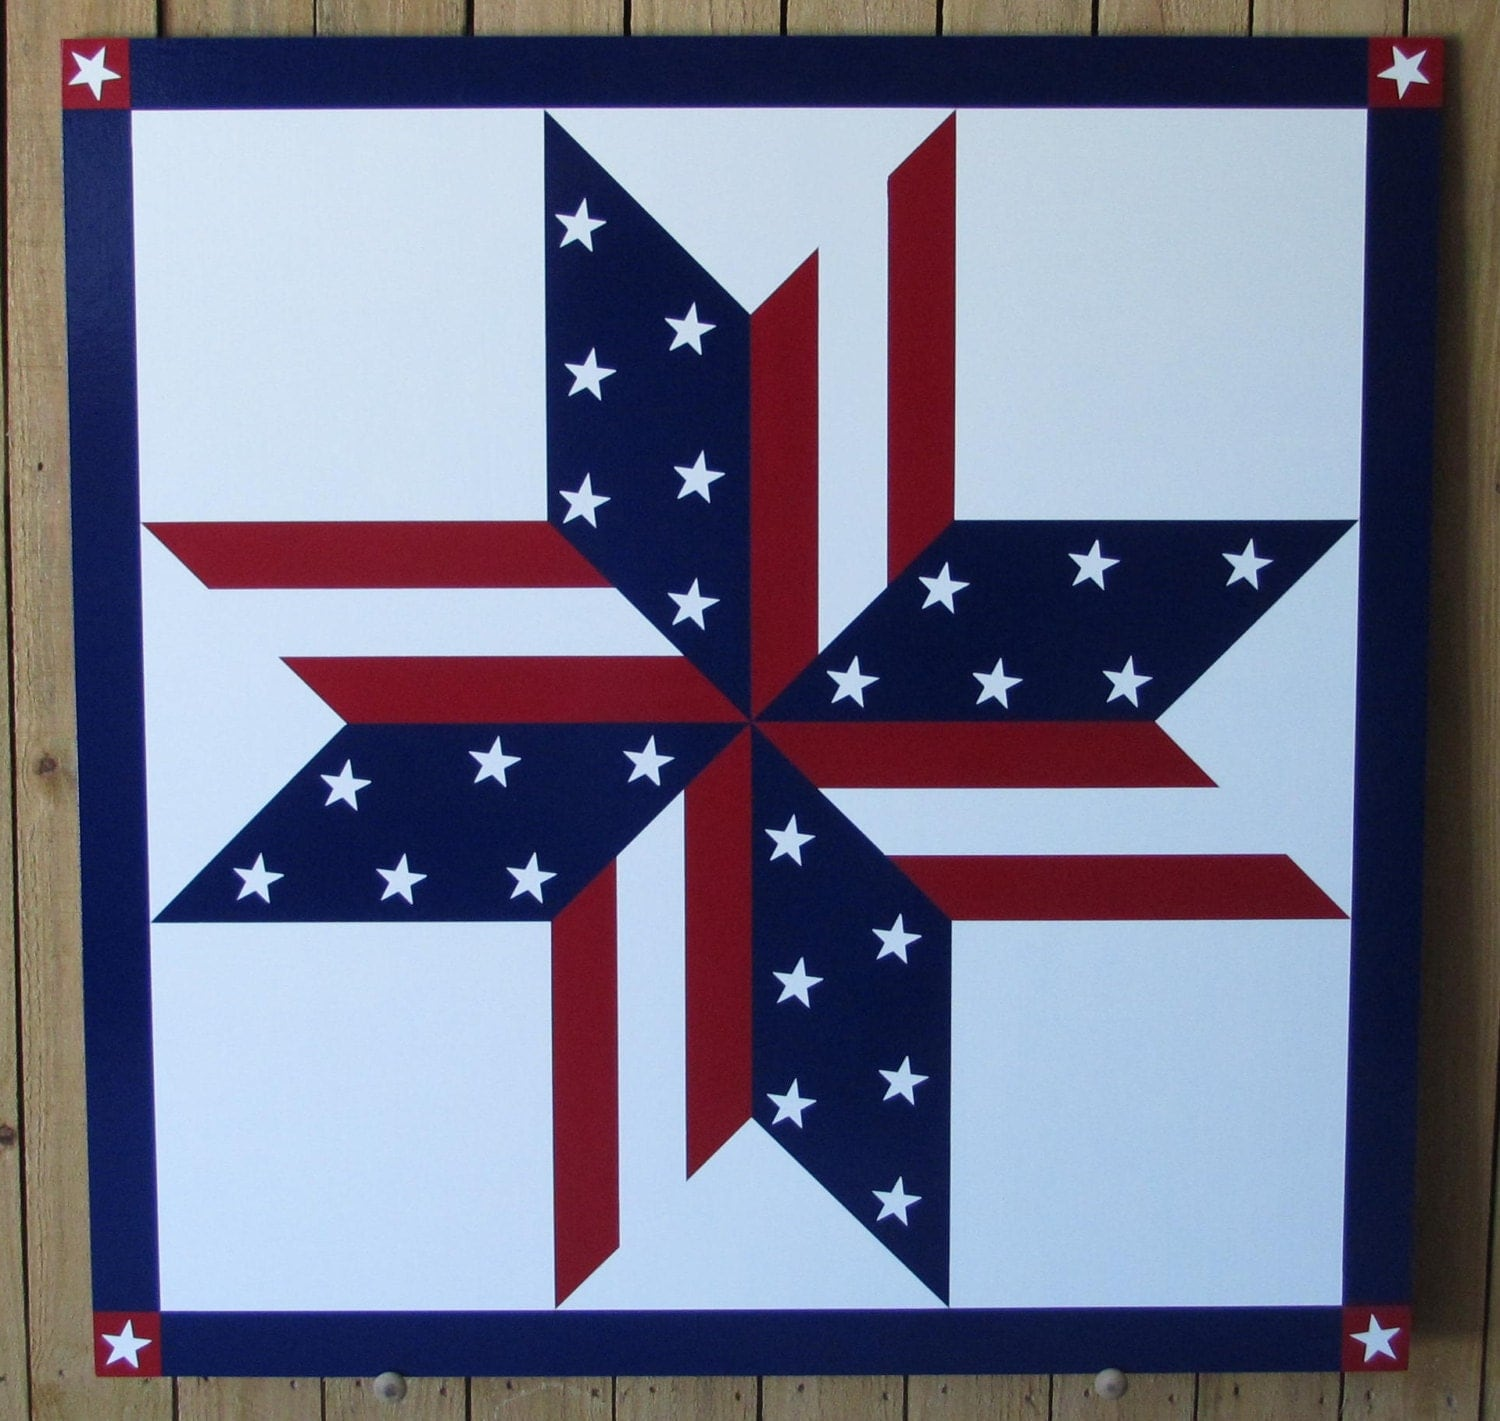 Red Barn Quilts Stars Stripes Barn Quilt 24x 24